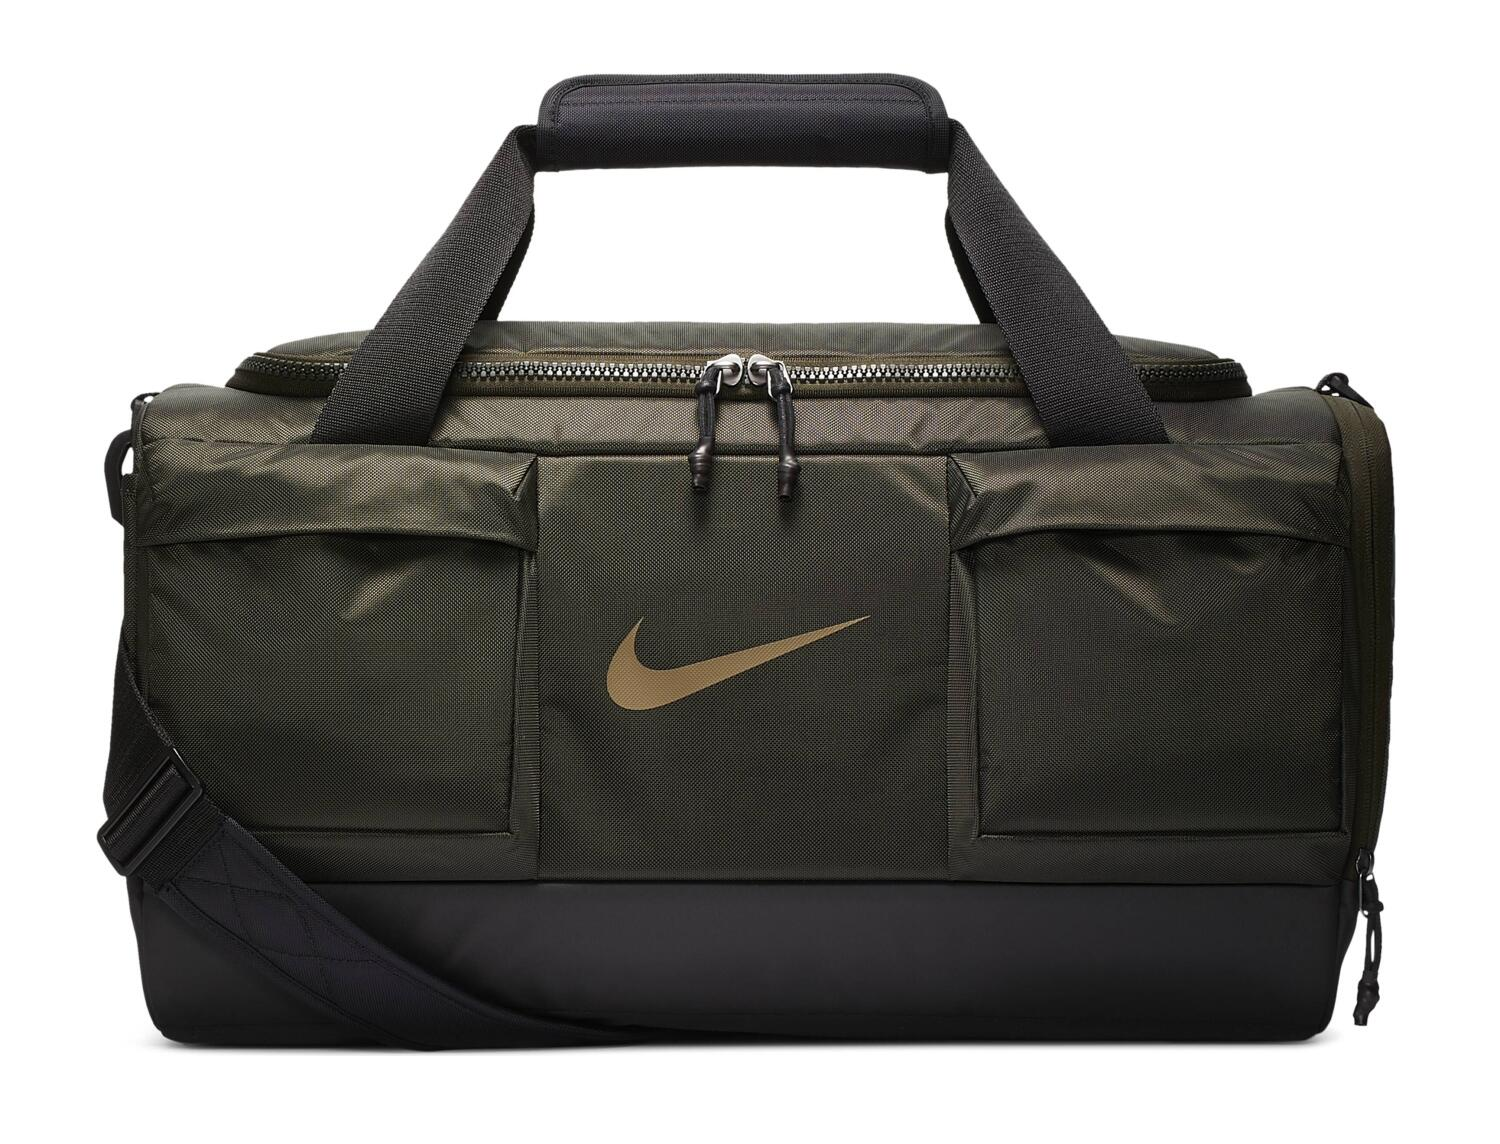 nike-vapor-power-s-duffel-trainingstasche-farbe-355-sequoia-black-beechtree-